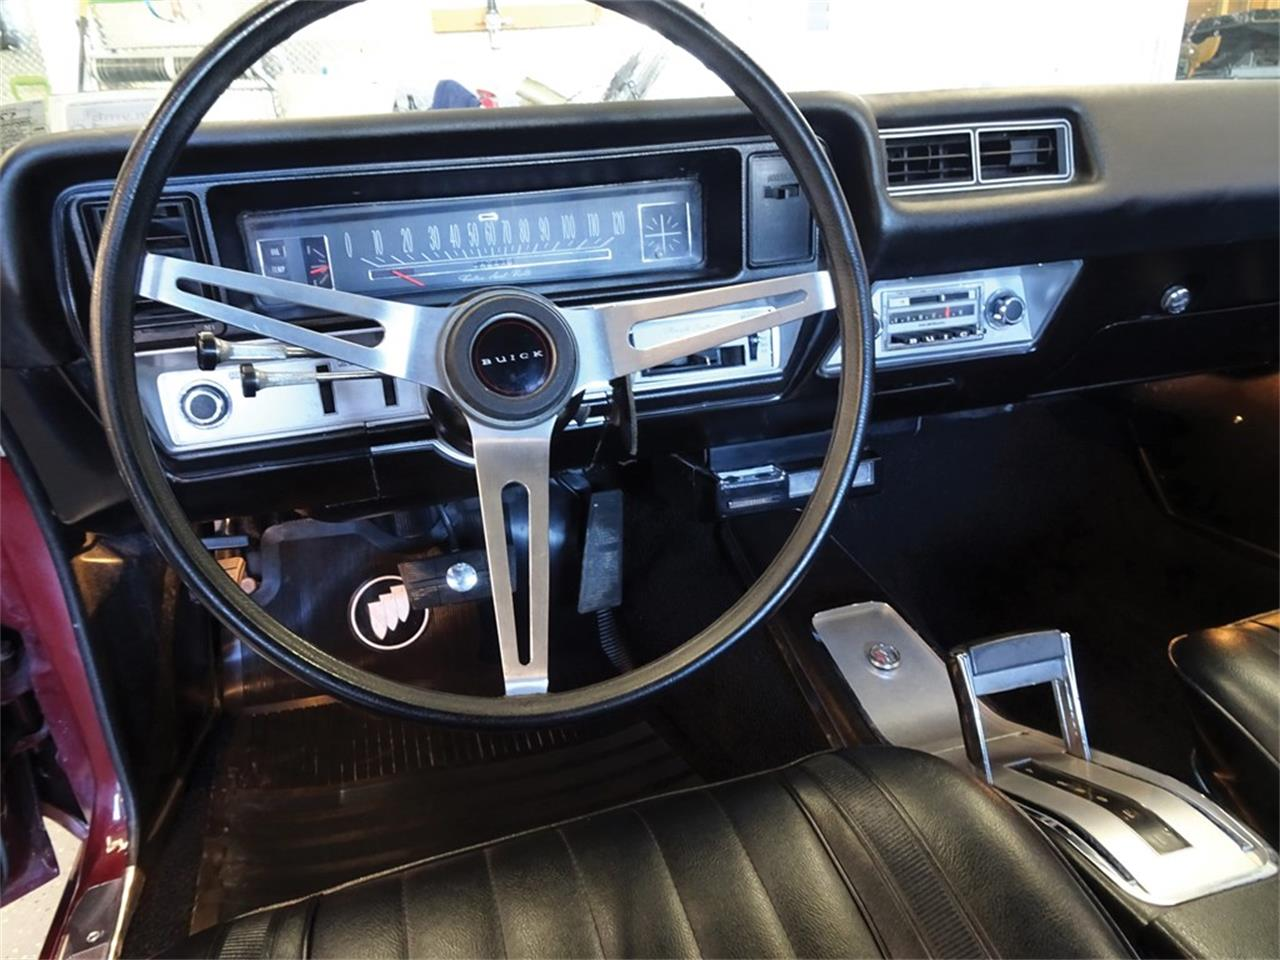 1969 Buick GS400 for sale in Fort Lauderdale, FL – photo 4